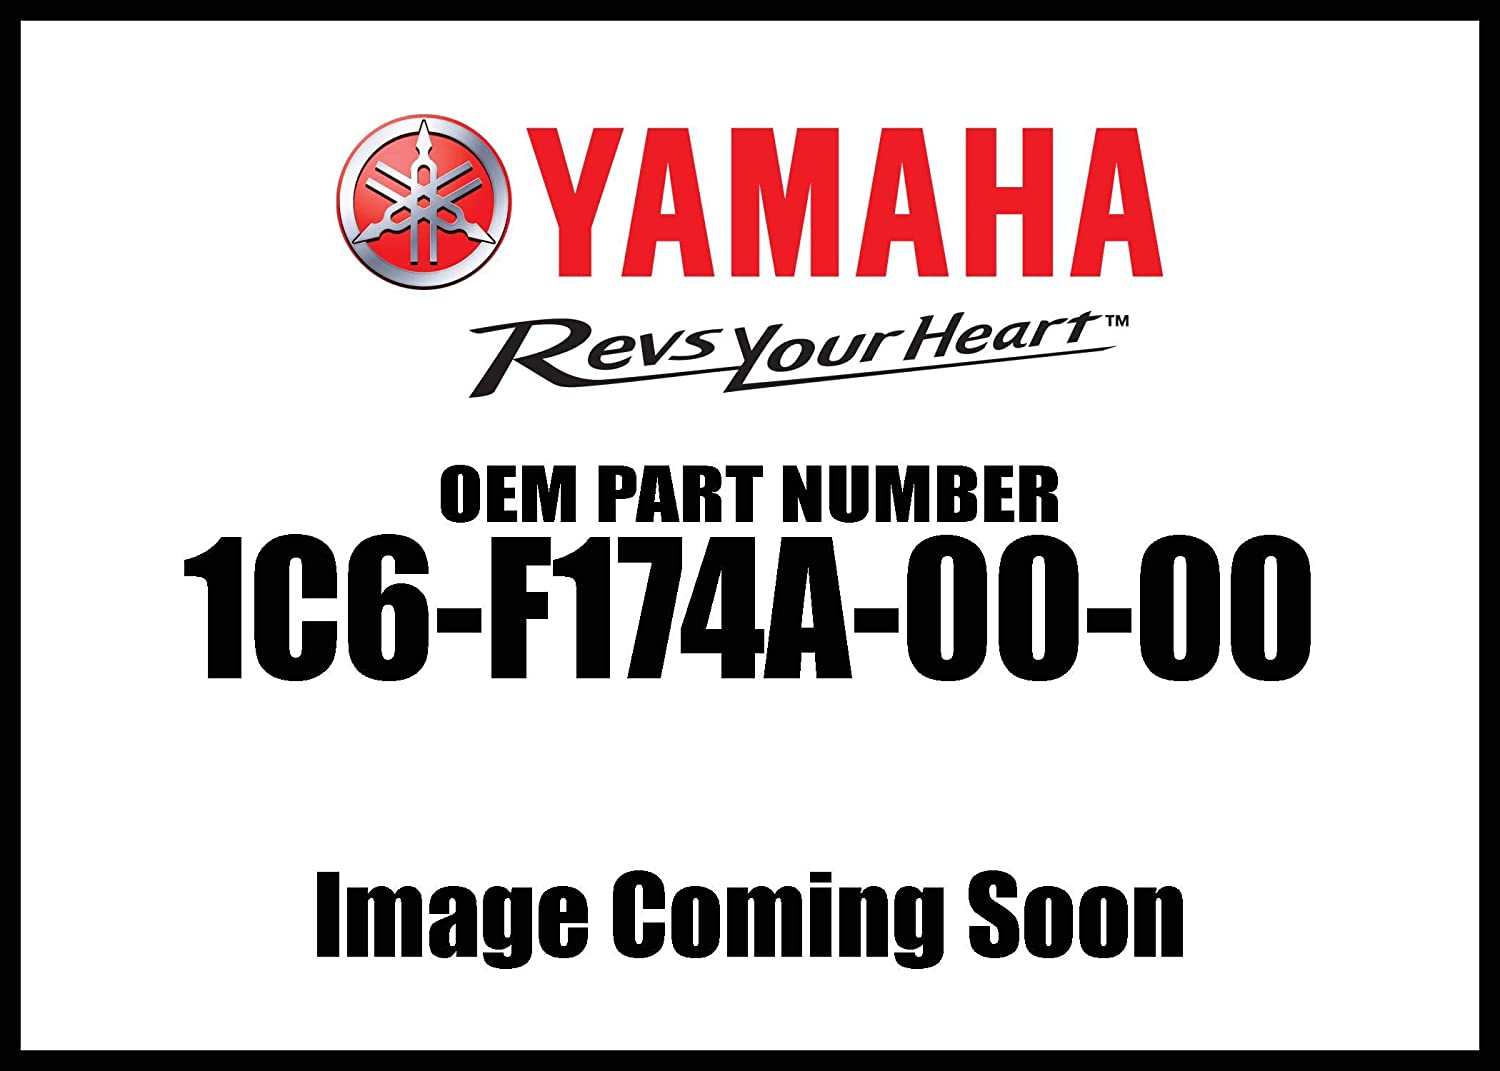 Yamaha 1C6-F174A-00-00 Insulator, Side Co; 1C6F174A0000 Made by Yamaha